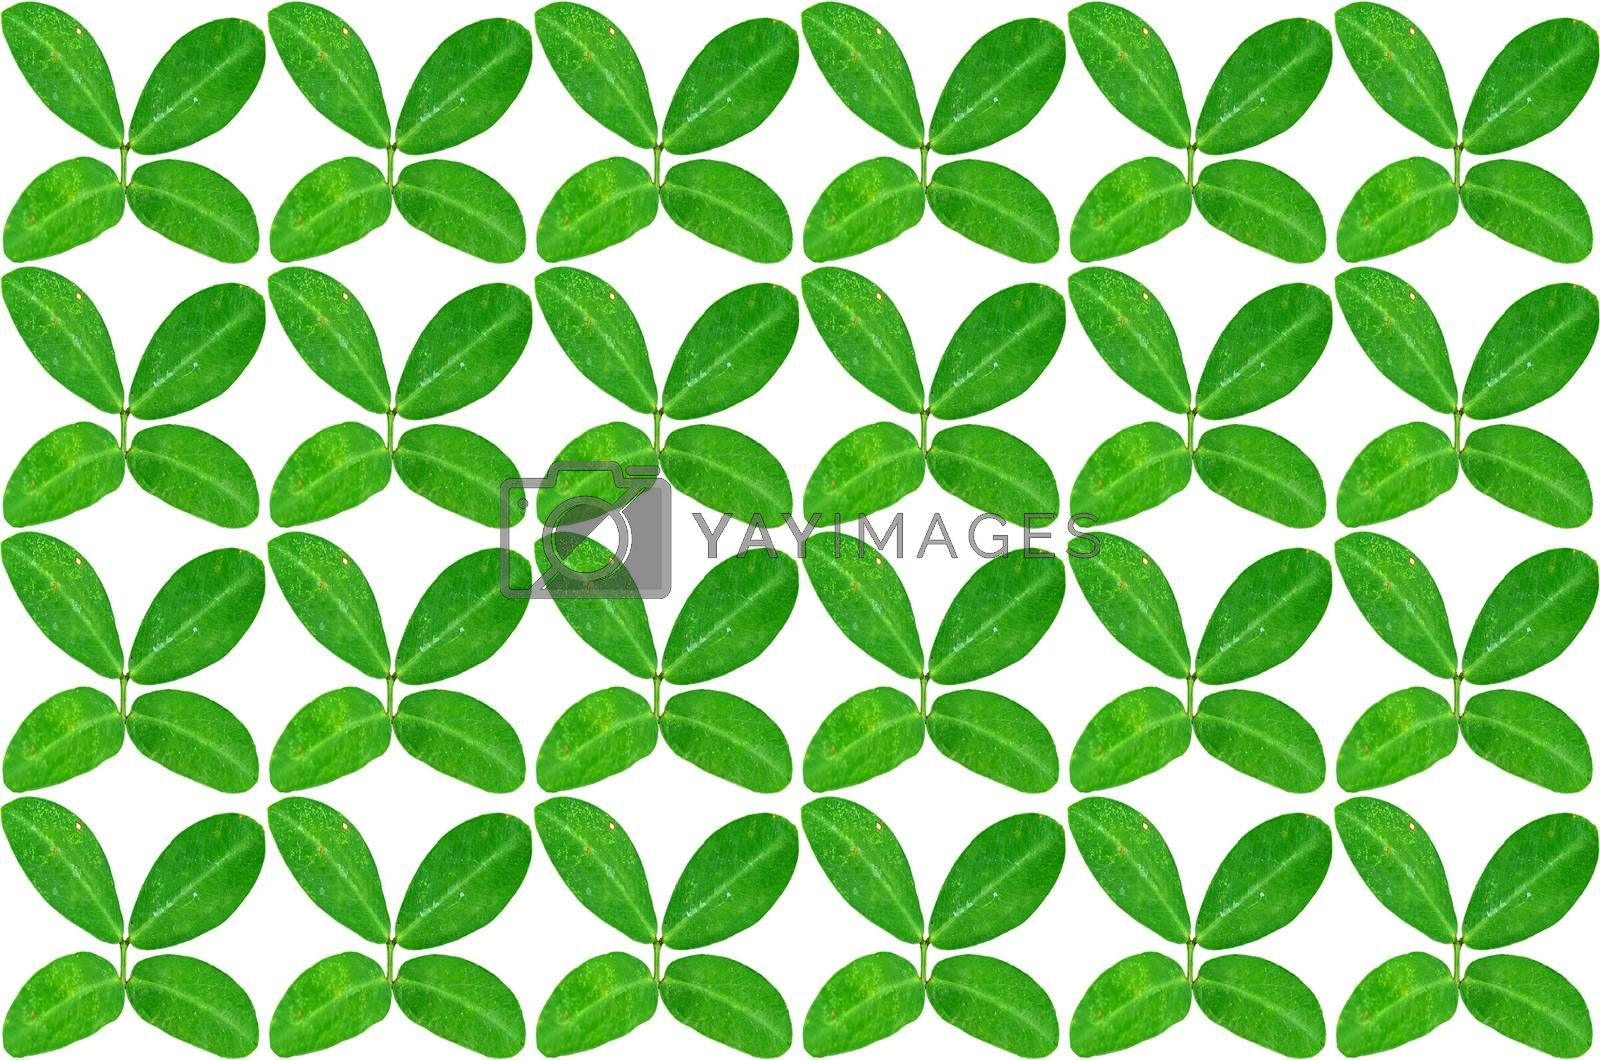 Royalty free image of green leaves  by raweenuttapong